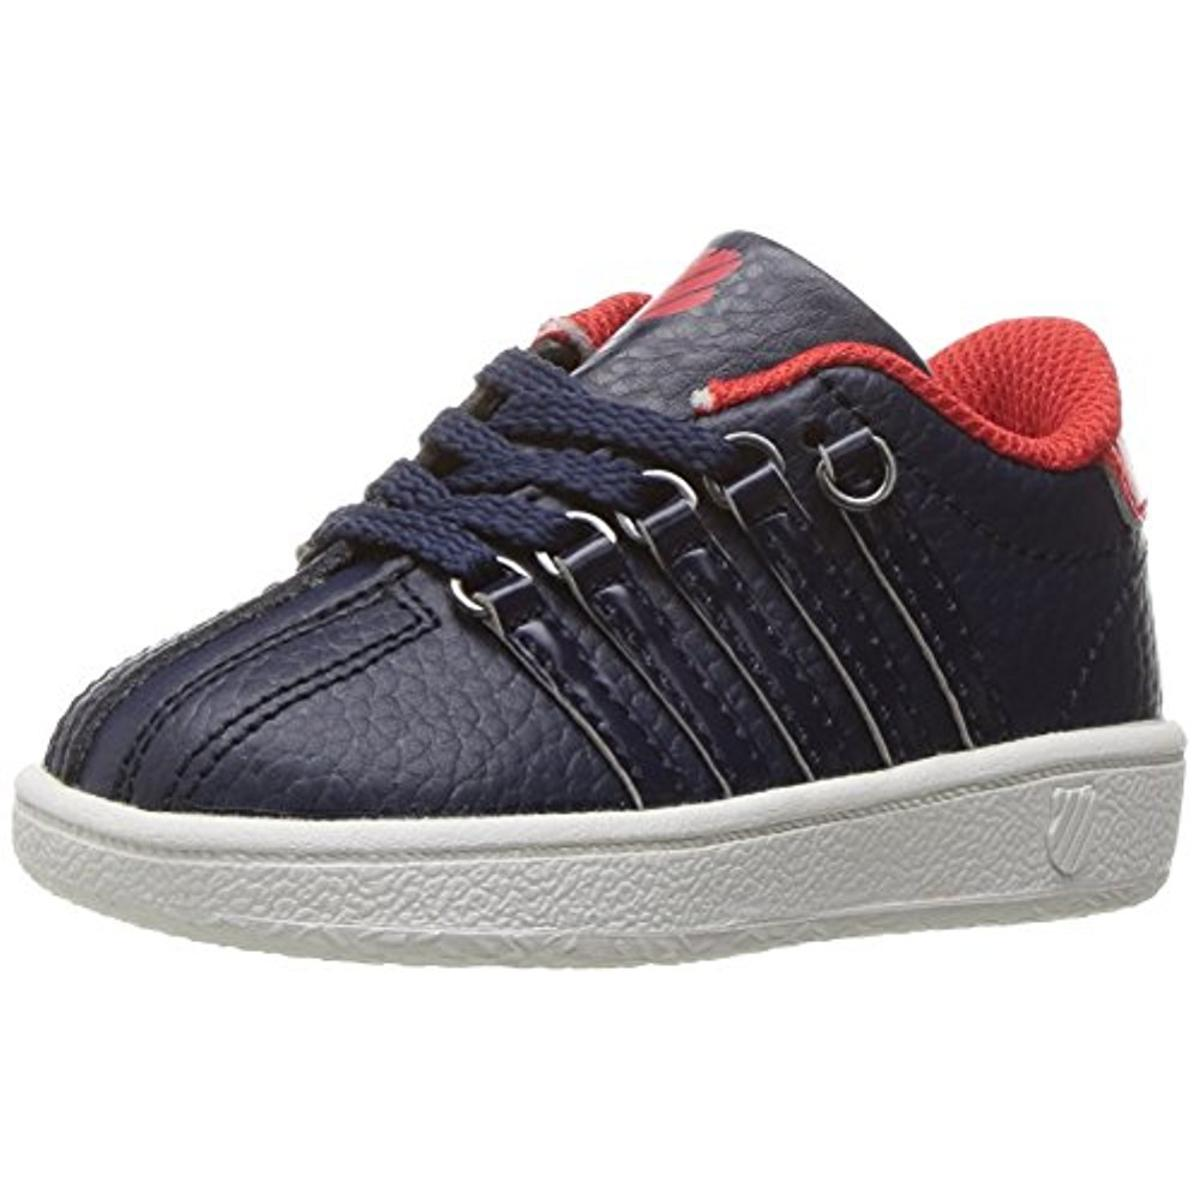 K-Swiss Boys Classic VN Signature Low Top Athletic Shoes by K-Swiss